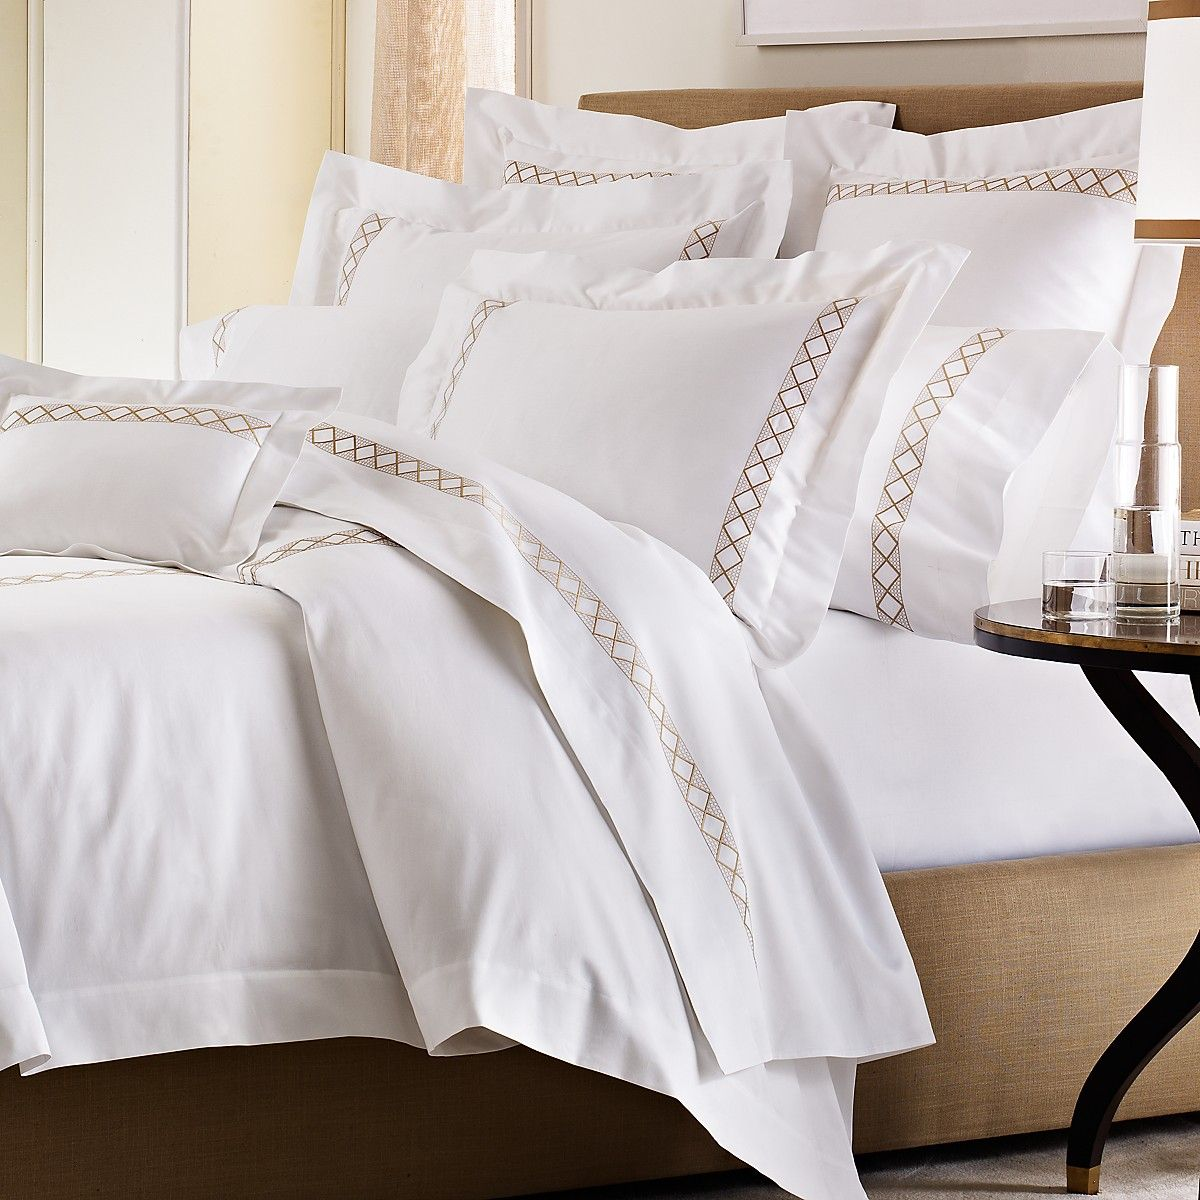 Beautiful Linens: Pratesi Bed Linen; More For The RegistryMy Favorite